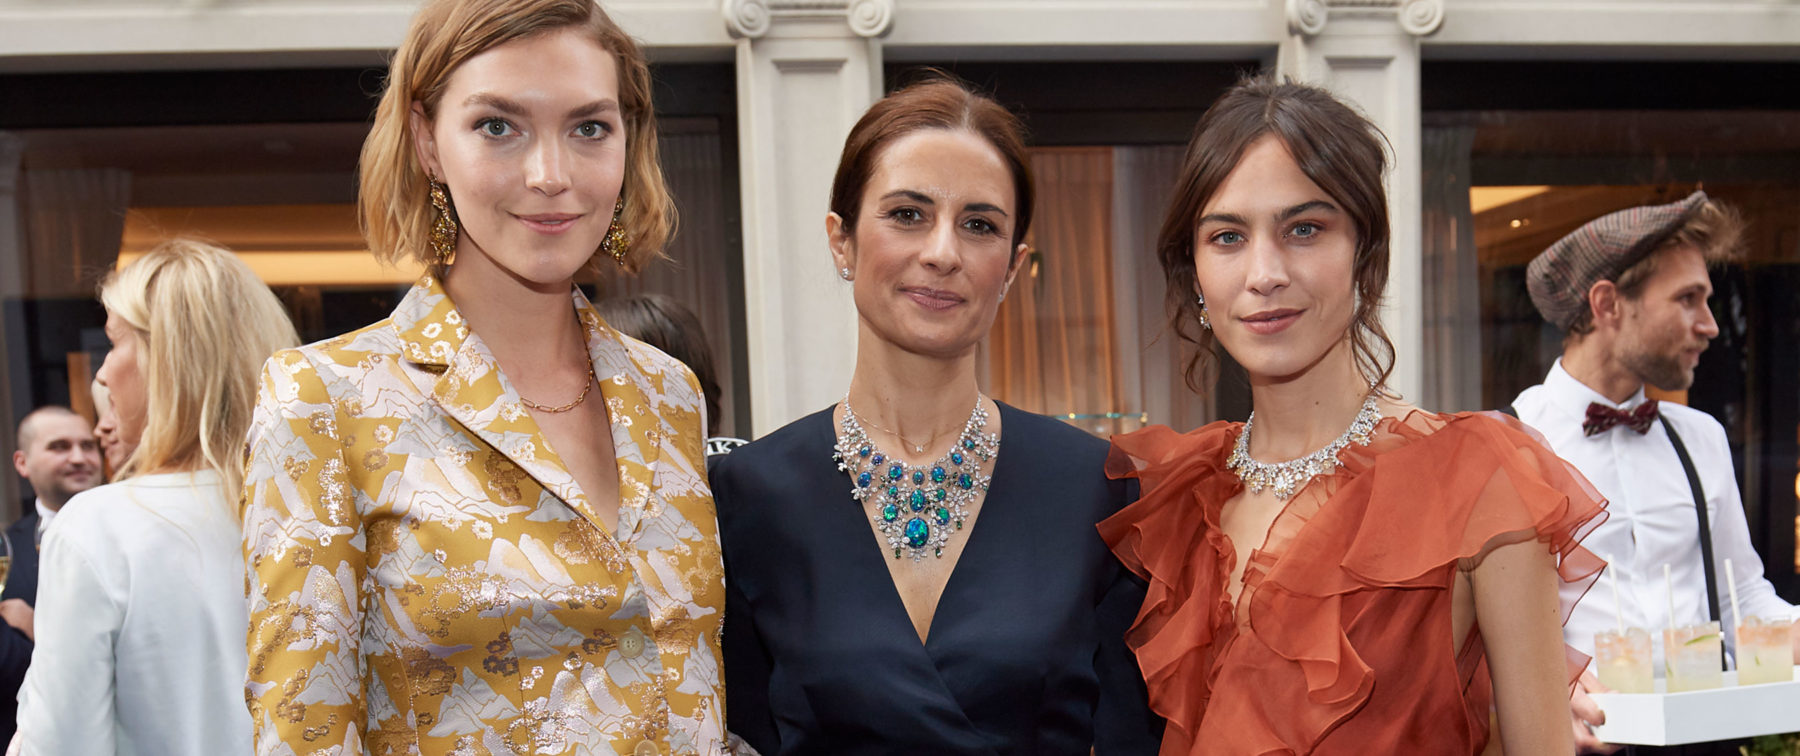 Arizona Musa, Alexa Chung and Livia Firth